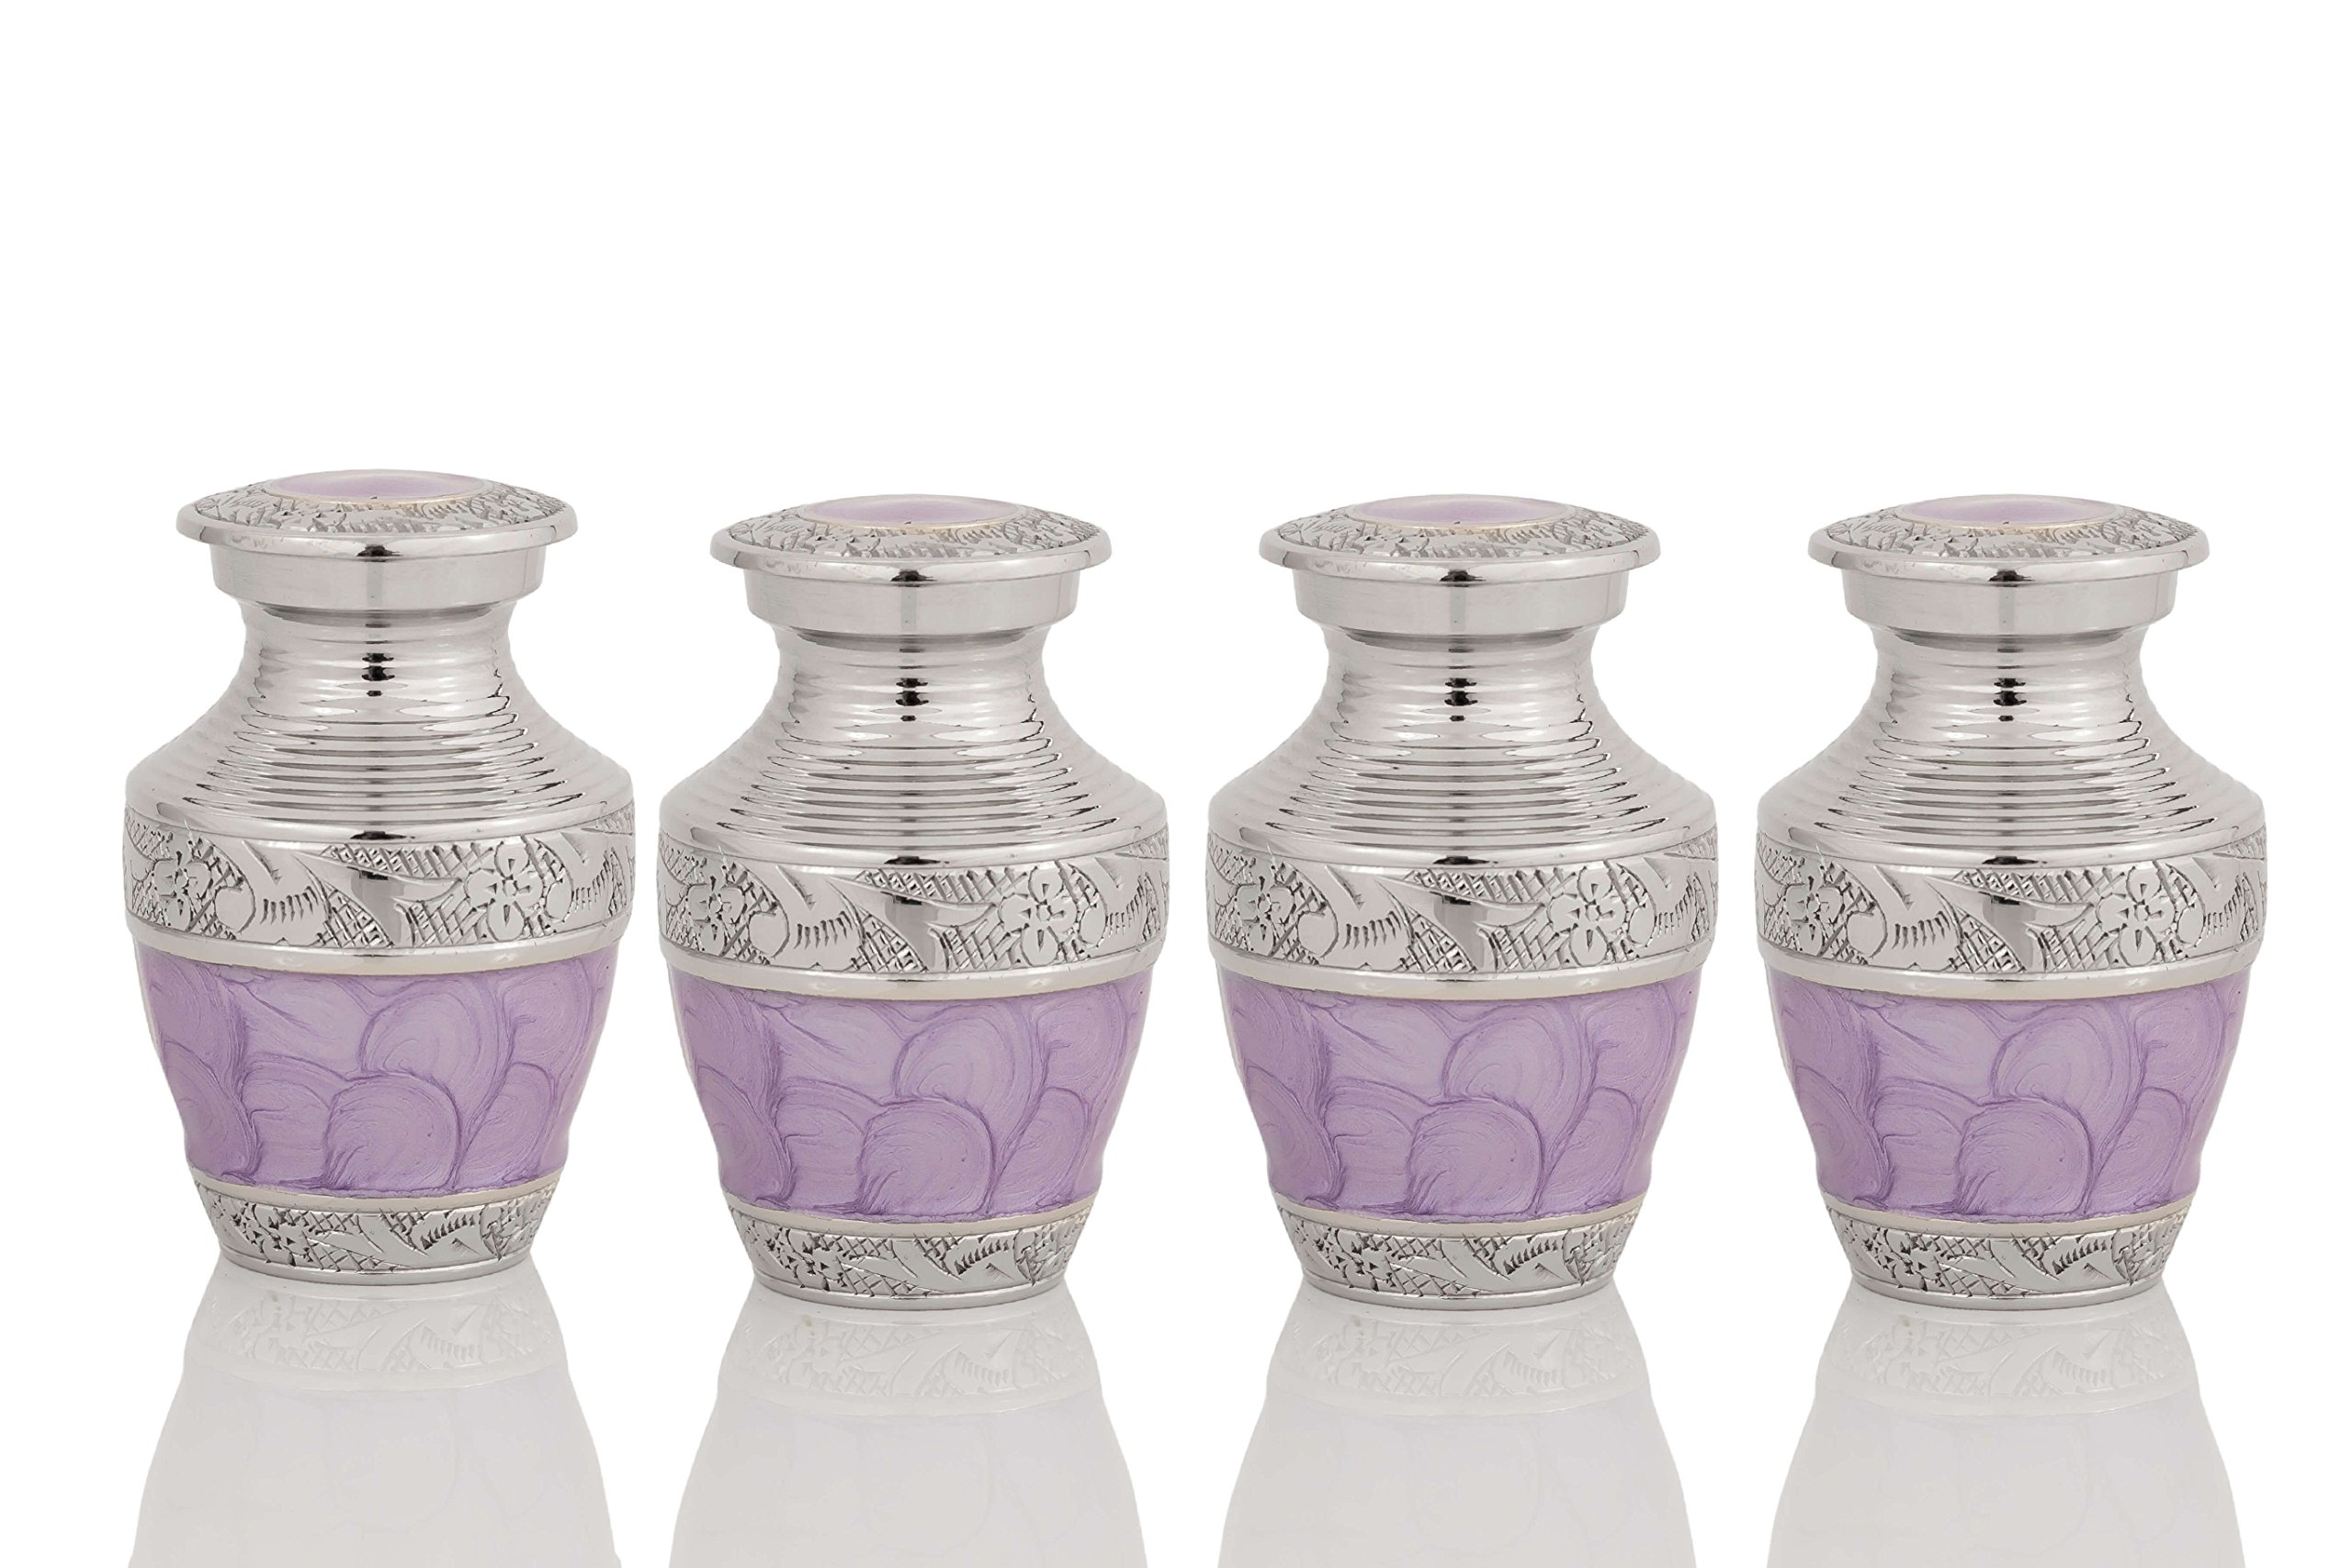 Enshrined Memorials Cremation Urn for Ashes - Artemis Series Affordable Solid Brass Metal Quality Handcrafted for Human Funeral Burial Small Mini Keepsake Set of 4, Purple Lavender